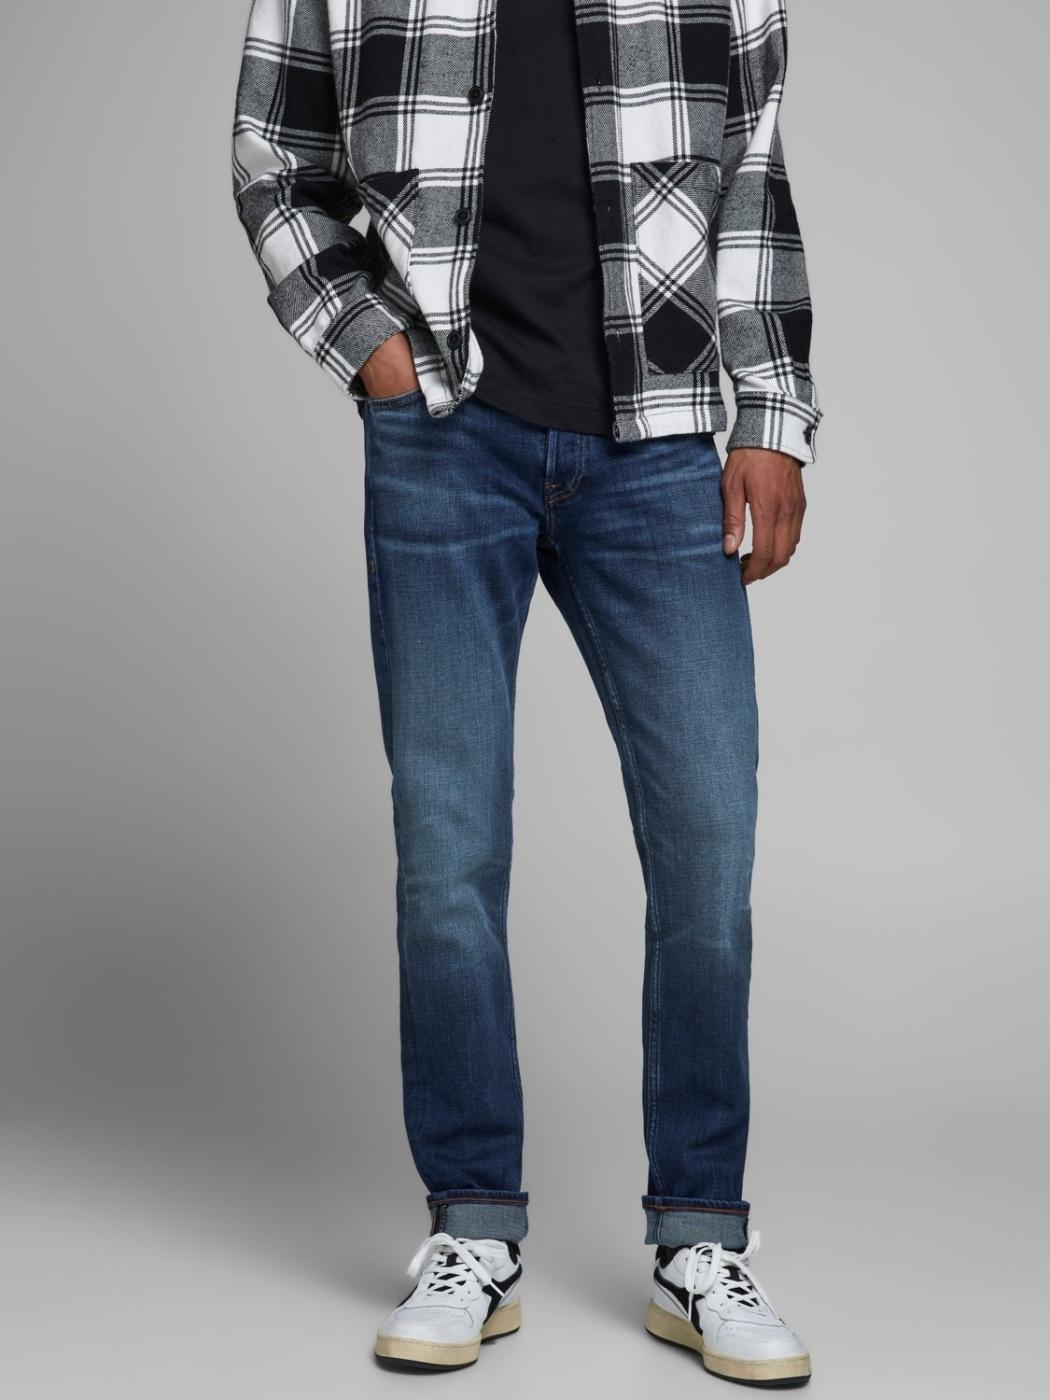 JJIGLENN JJORIGINAL BLUE DENIM-X